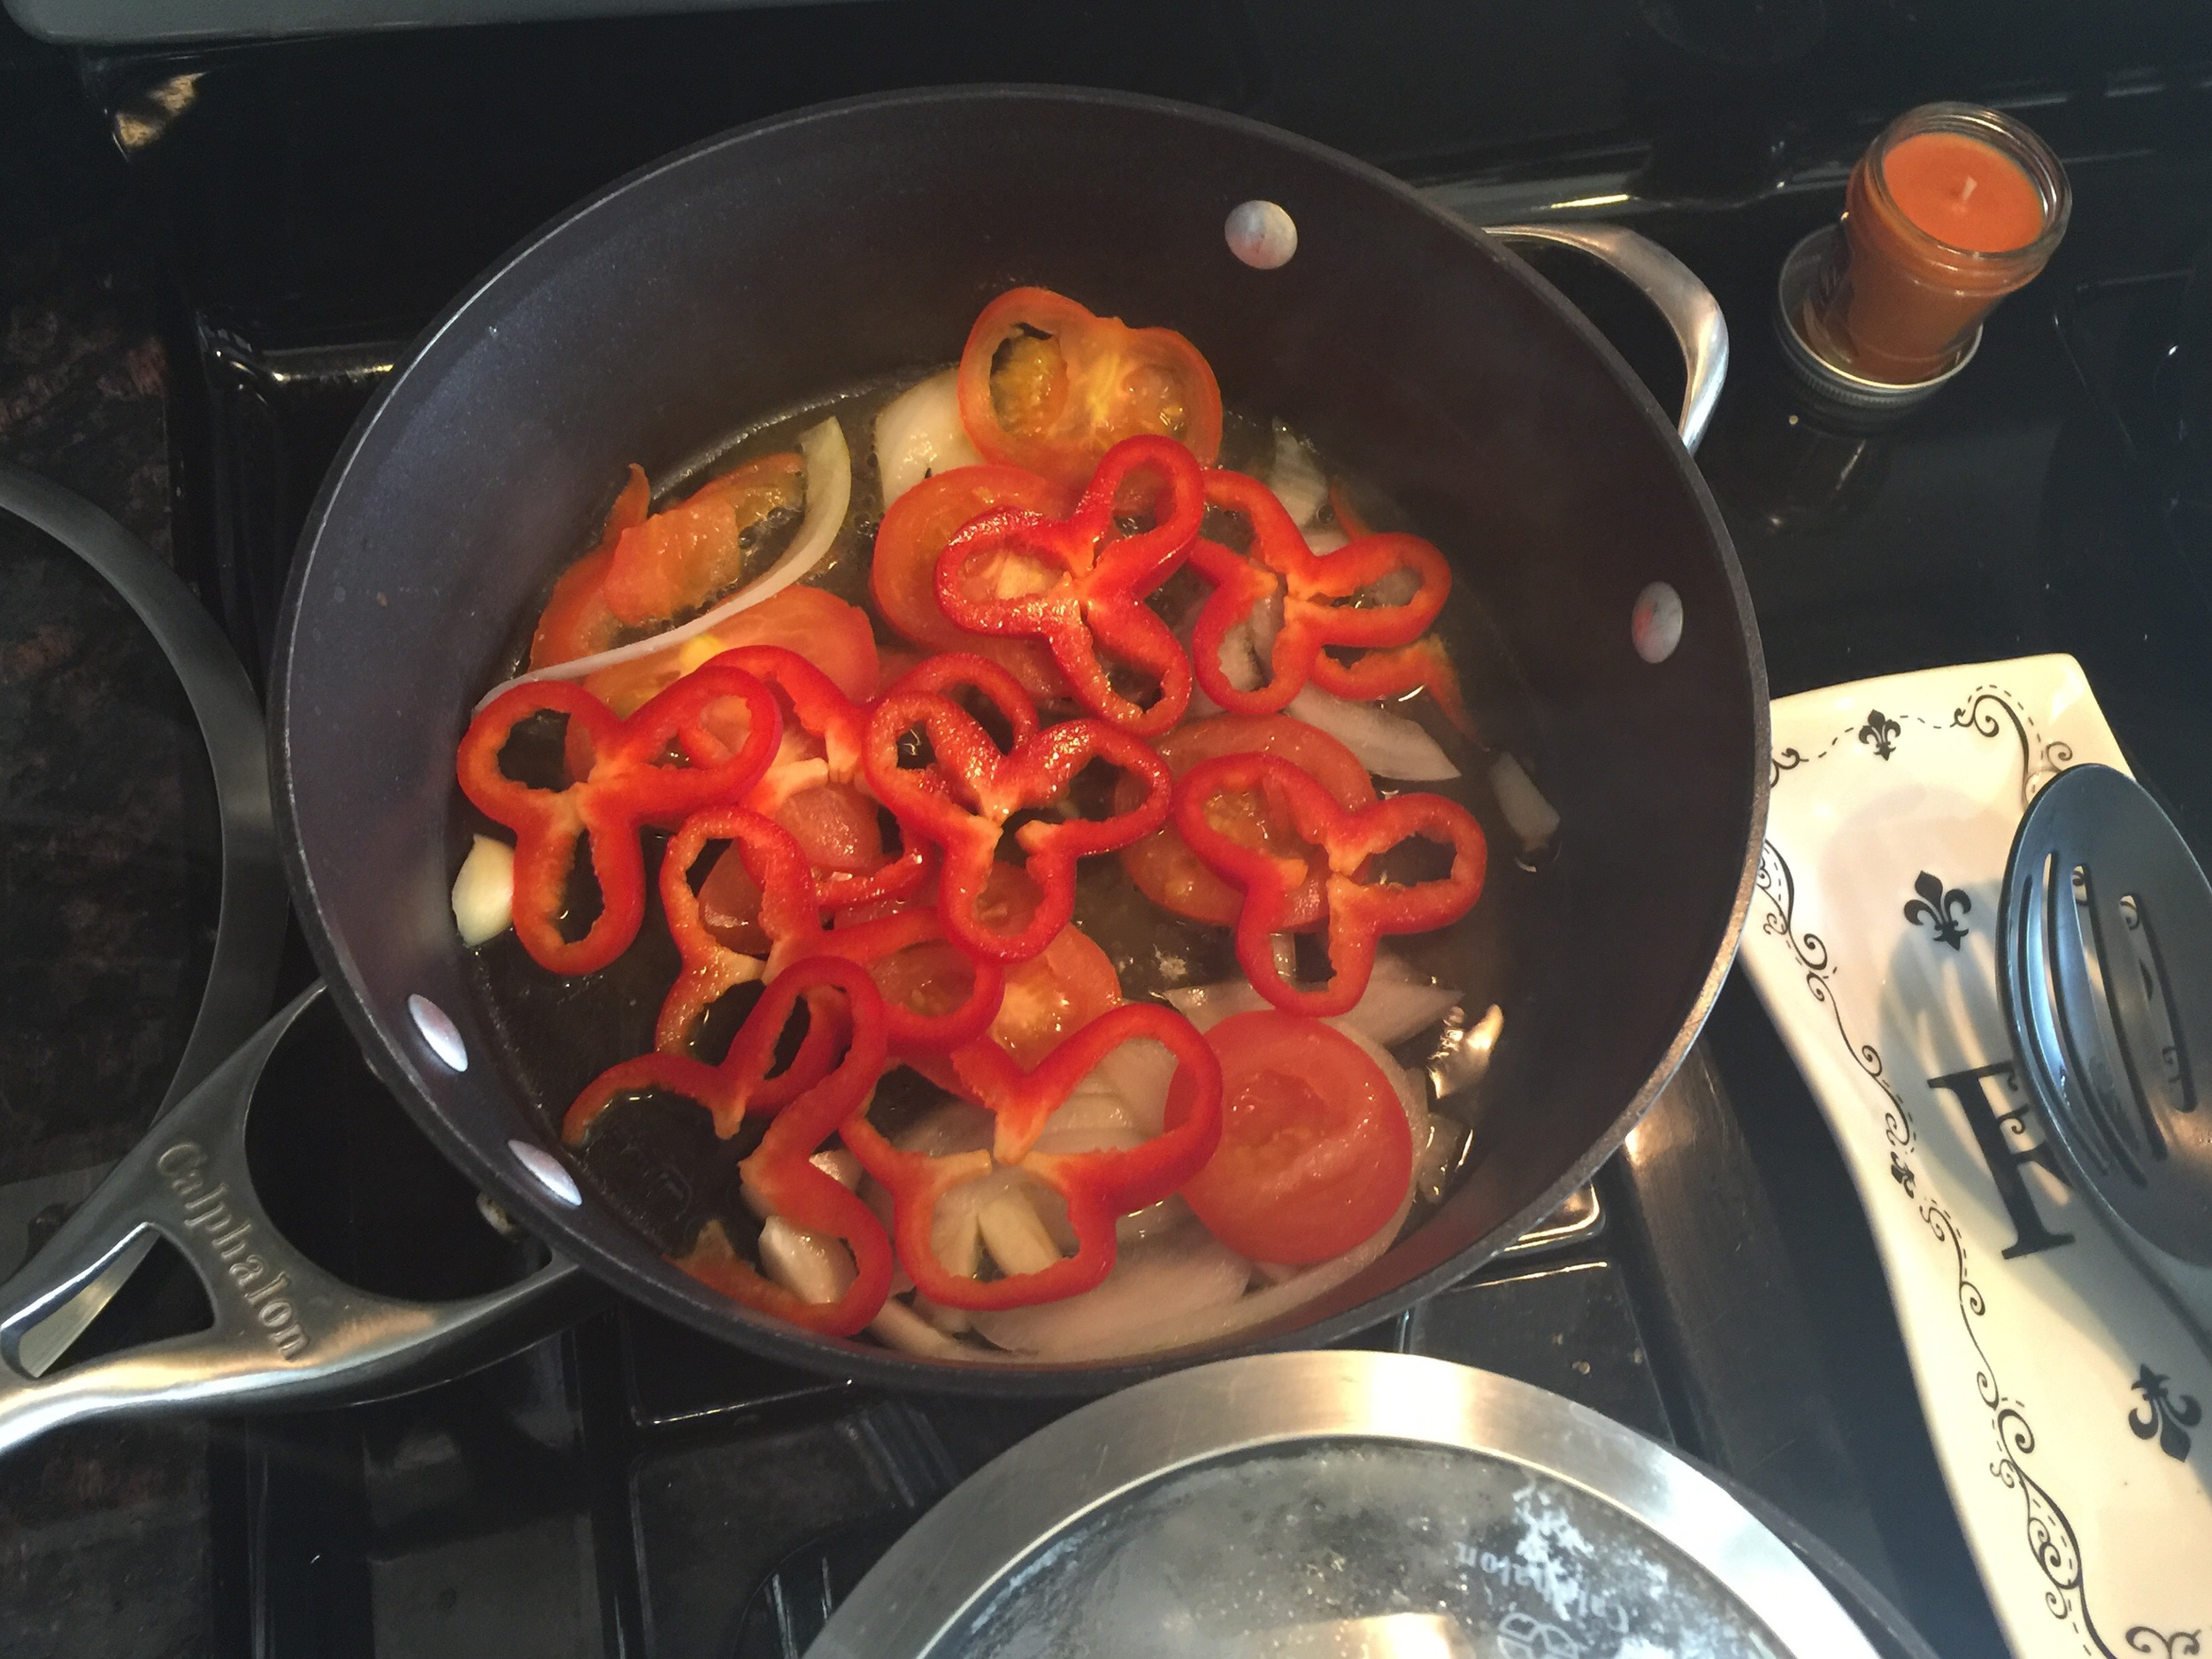 Meanwhile sauté your fresh tomatoes, onions, and red bell pepper with olive oil & fresh garlic.